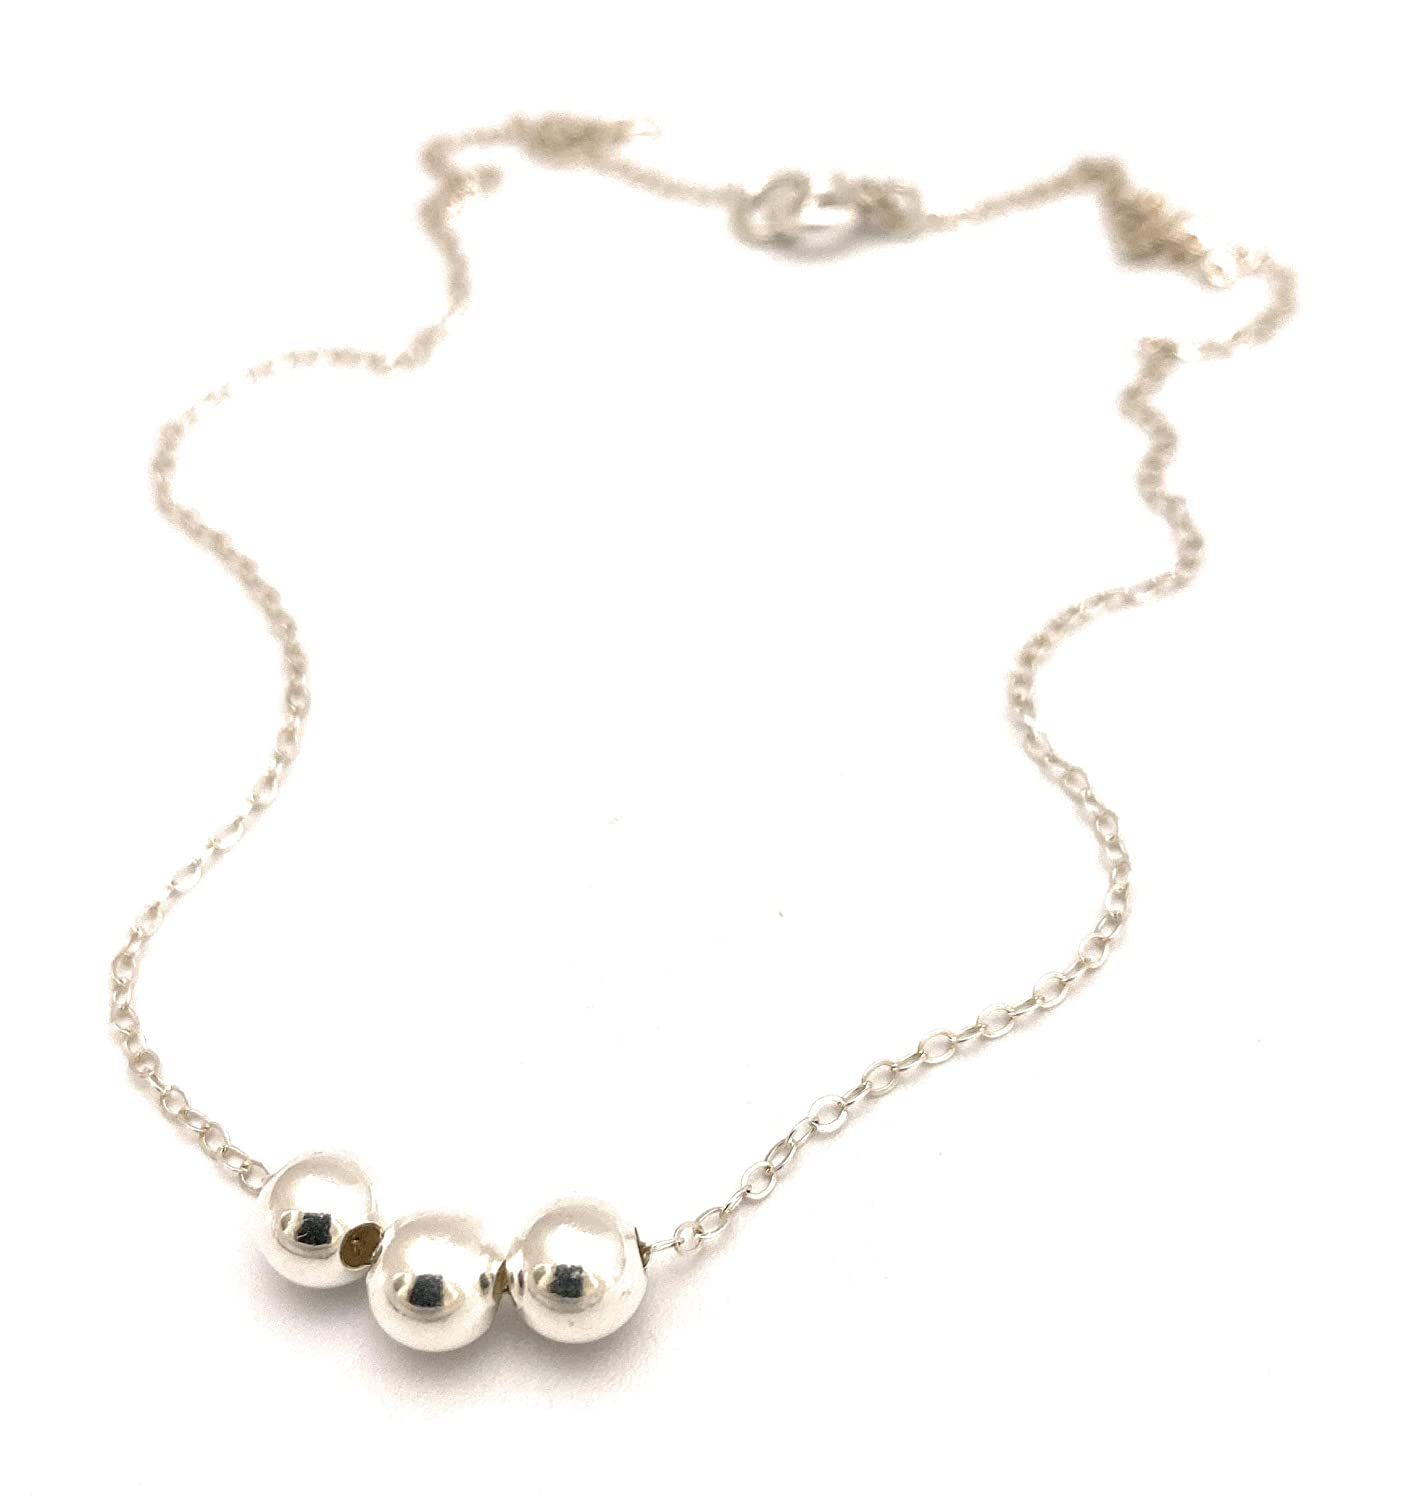 Minimalist Necklace Sterling Silver Beads Silver Balls Necklace Silver Beads Necklace